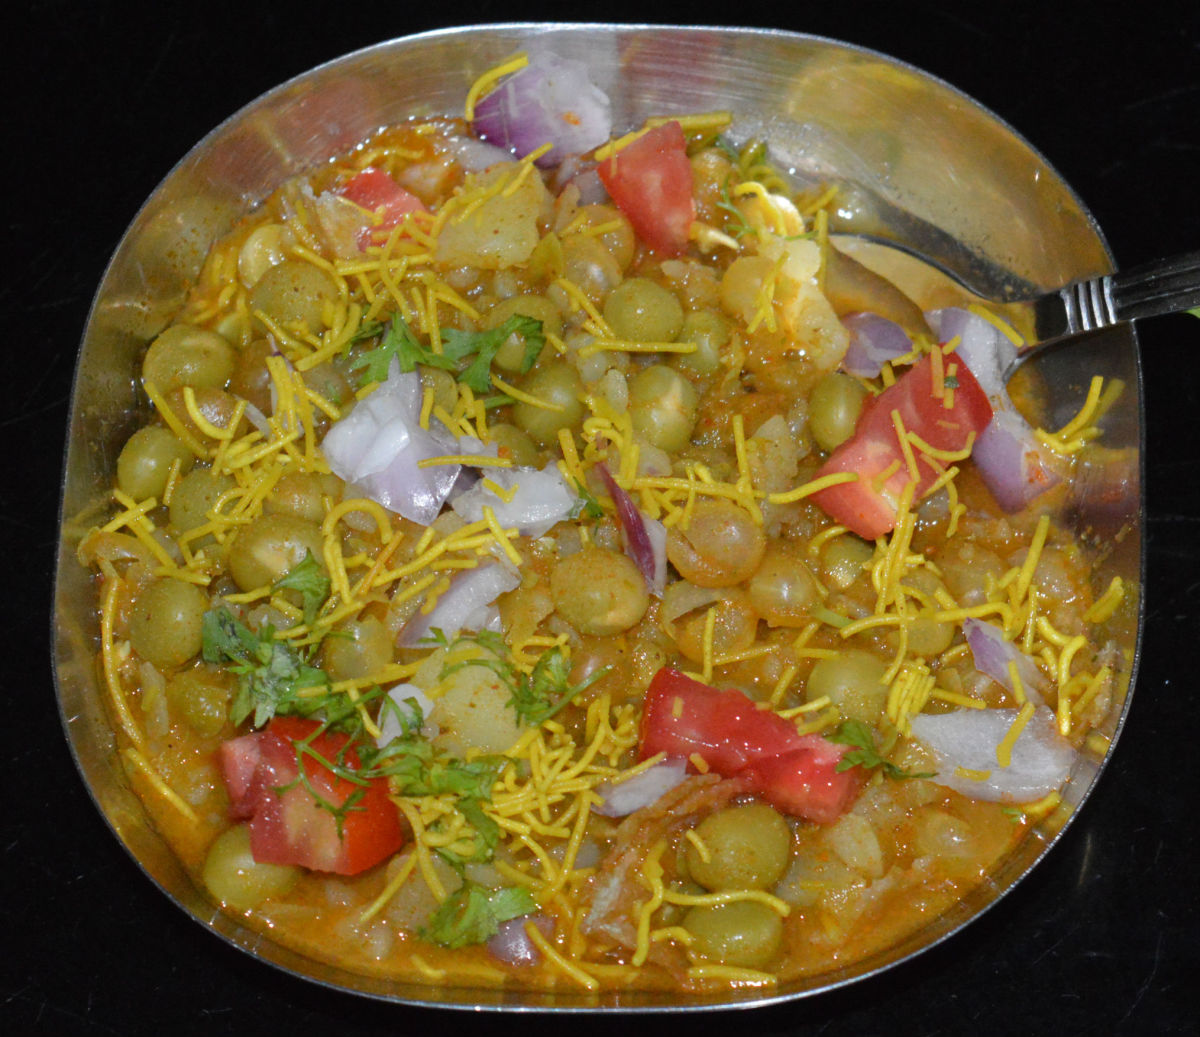 Add 4-6 tablespoons of the gravy on it. Top it with chopped onions, tomatoes, fresh coriander leaves and thin sev. Serve hot. Enjoy this healthy and delightful snack in the evening!